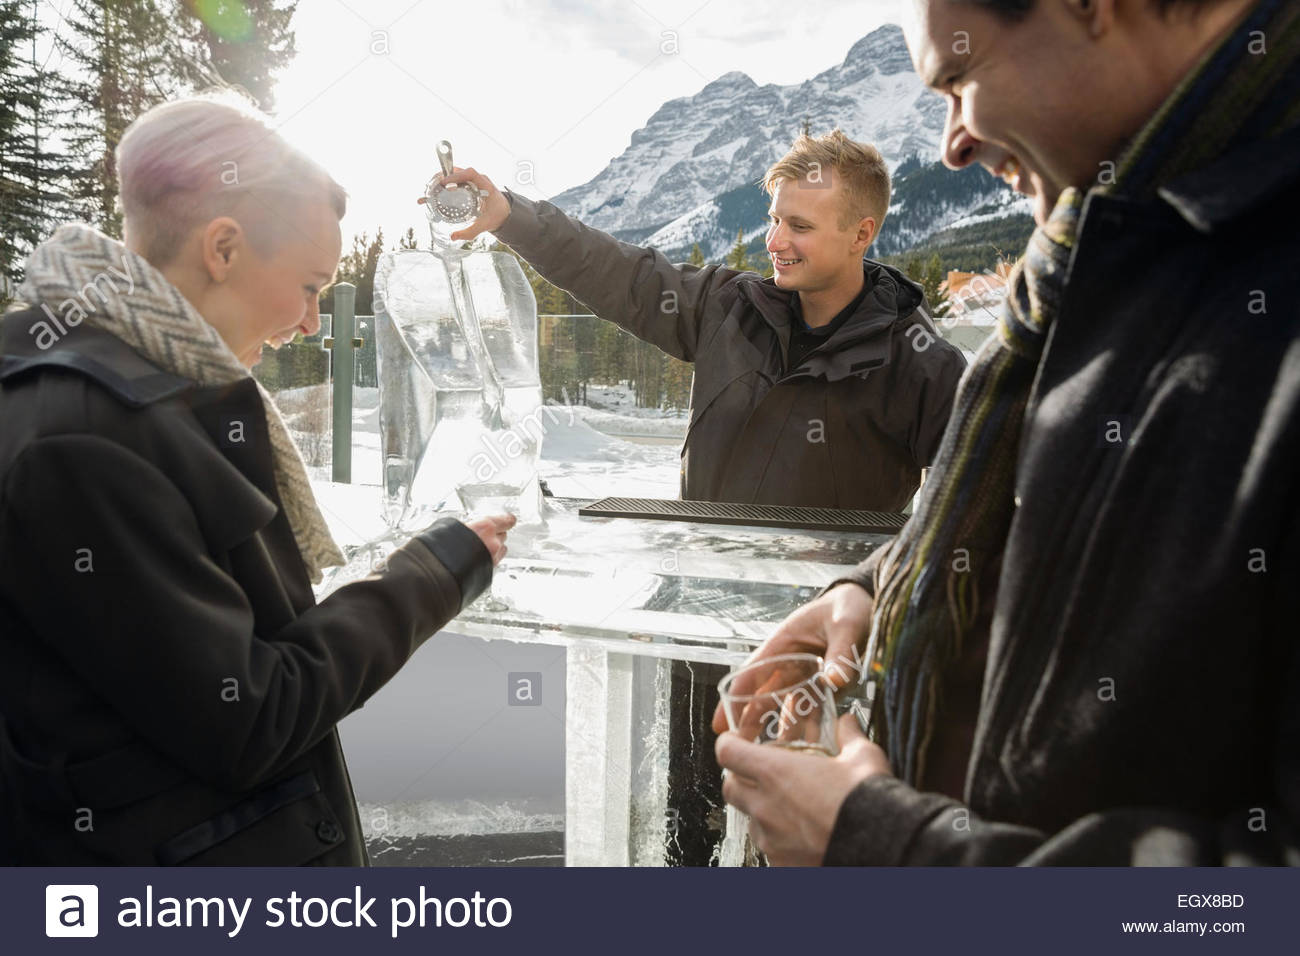 Bartender chipping at ice block on outdoor patio - Stock Image